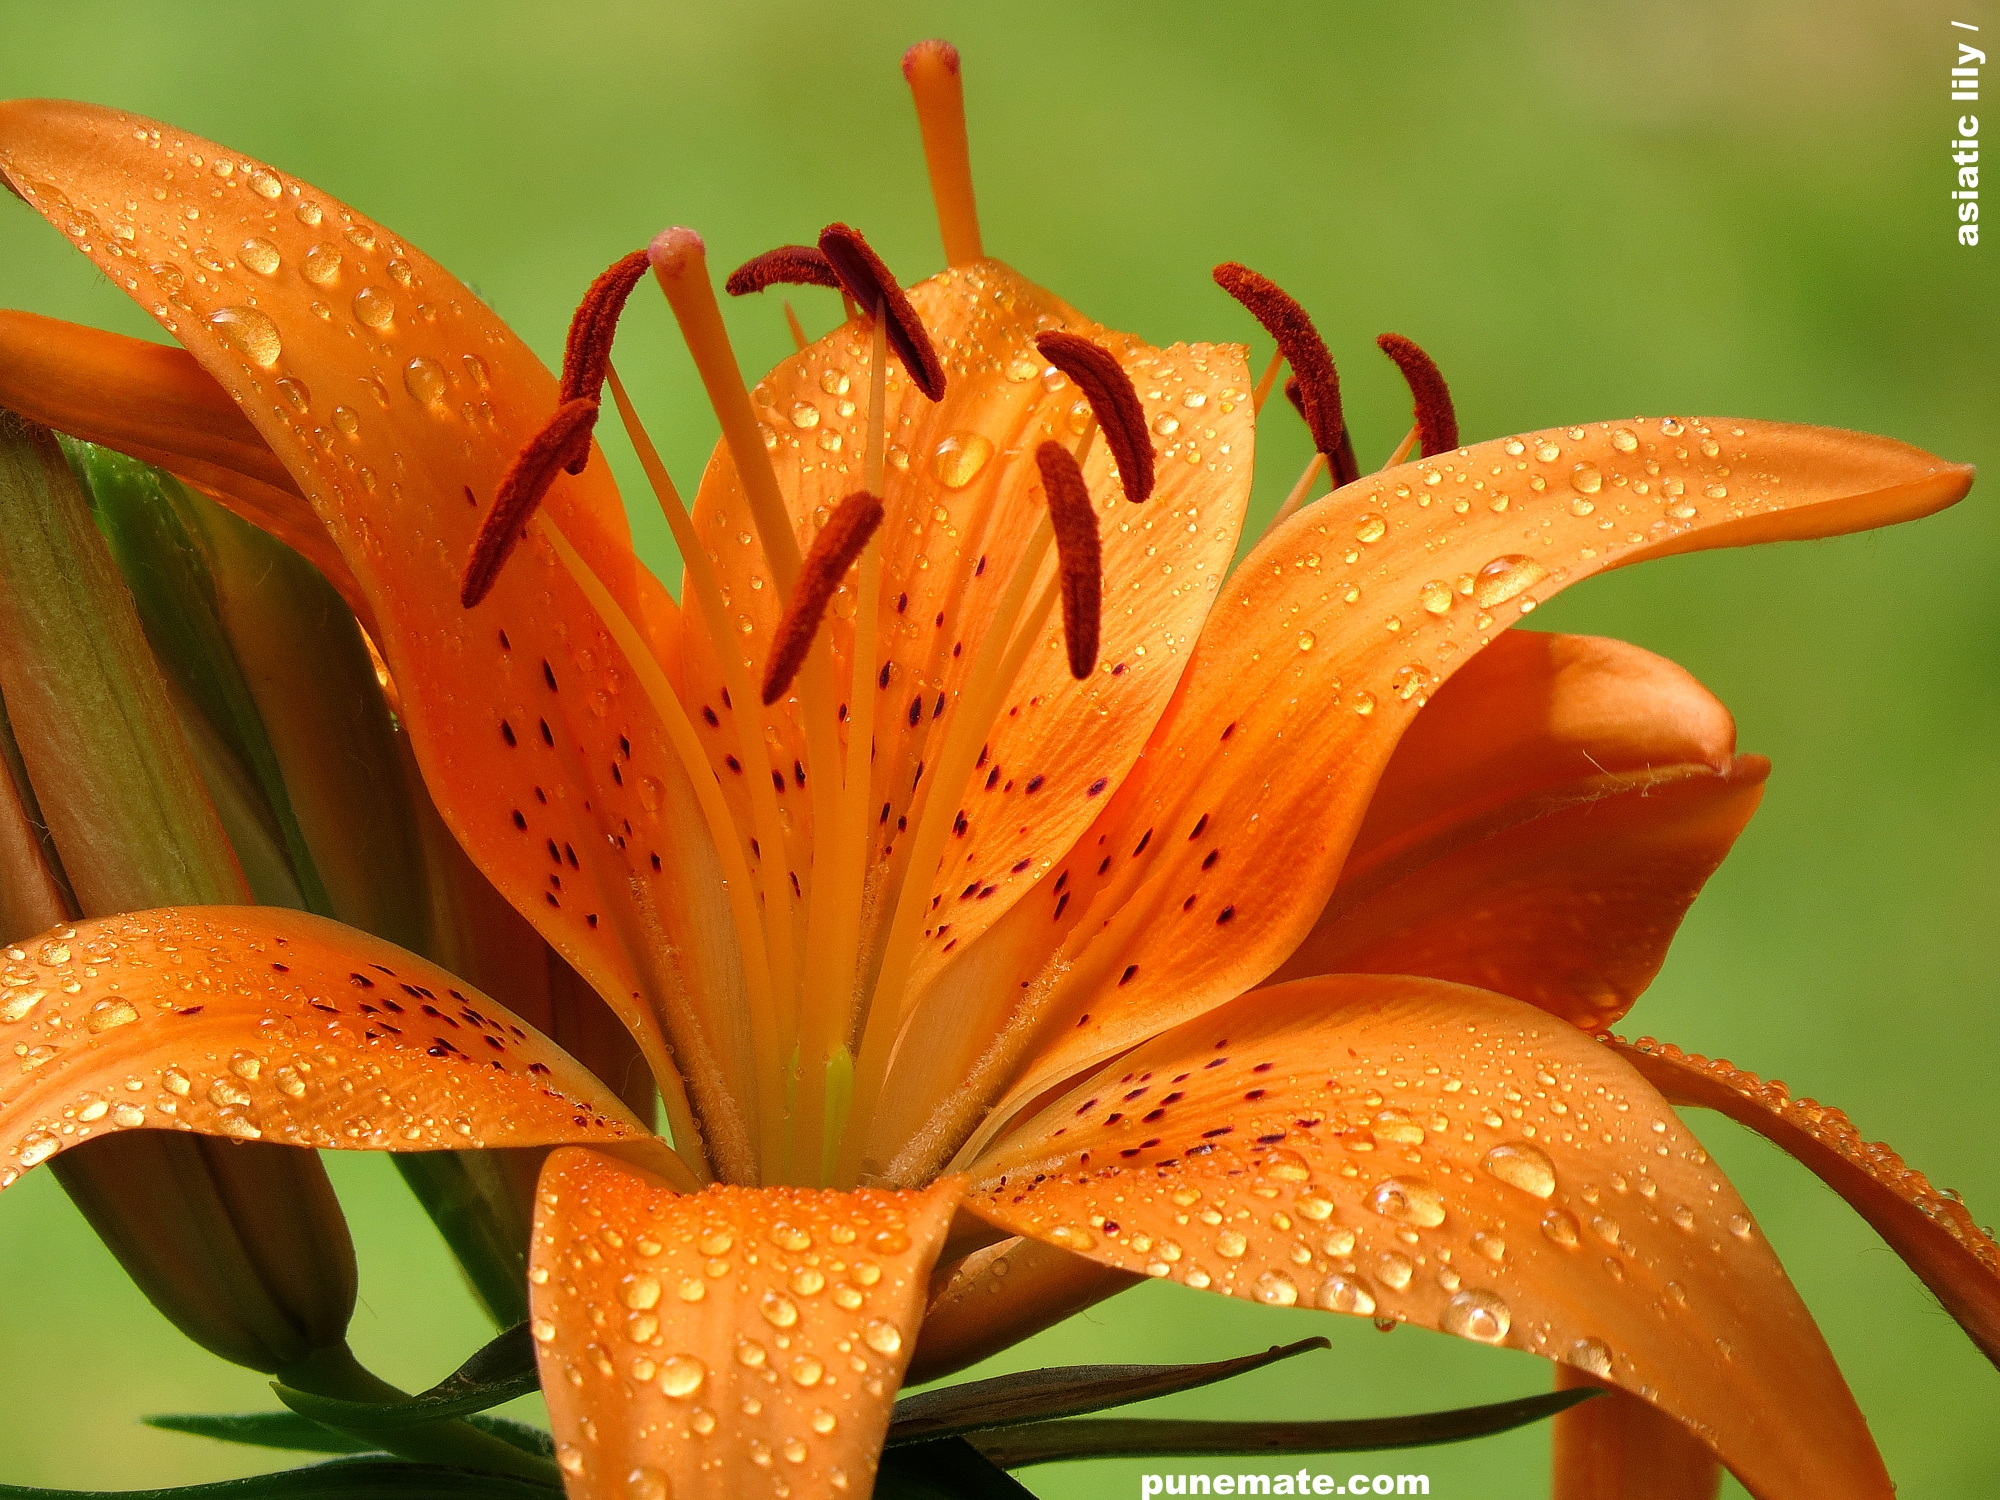 Plants And Flowers Of India And Pune Asiatic Lilies Vs Oriental